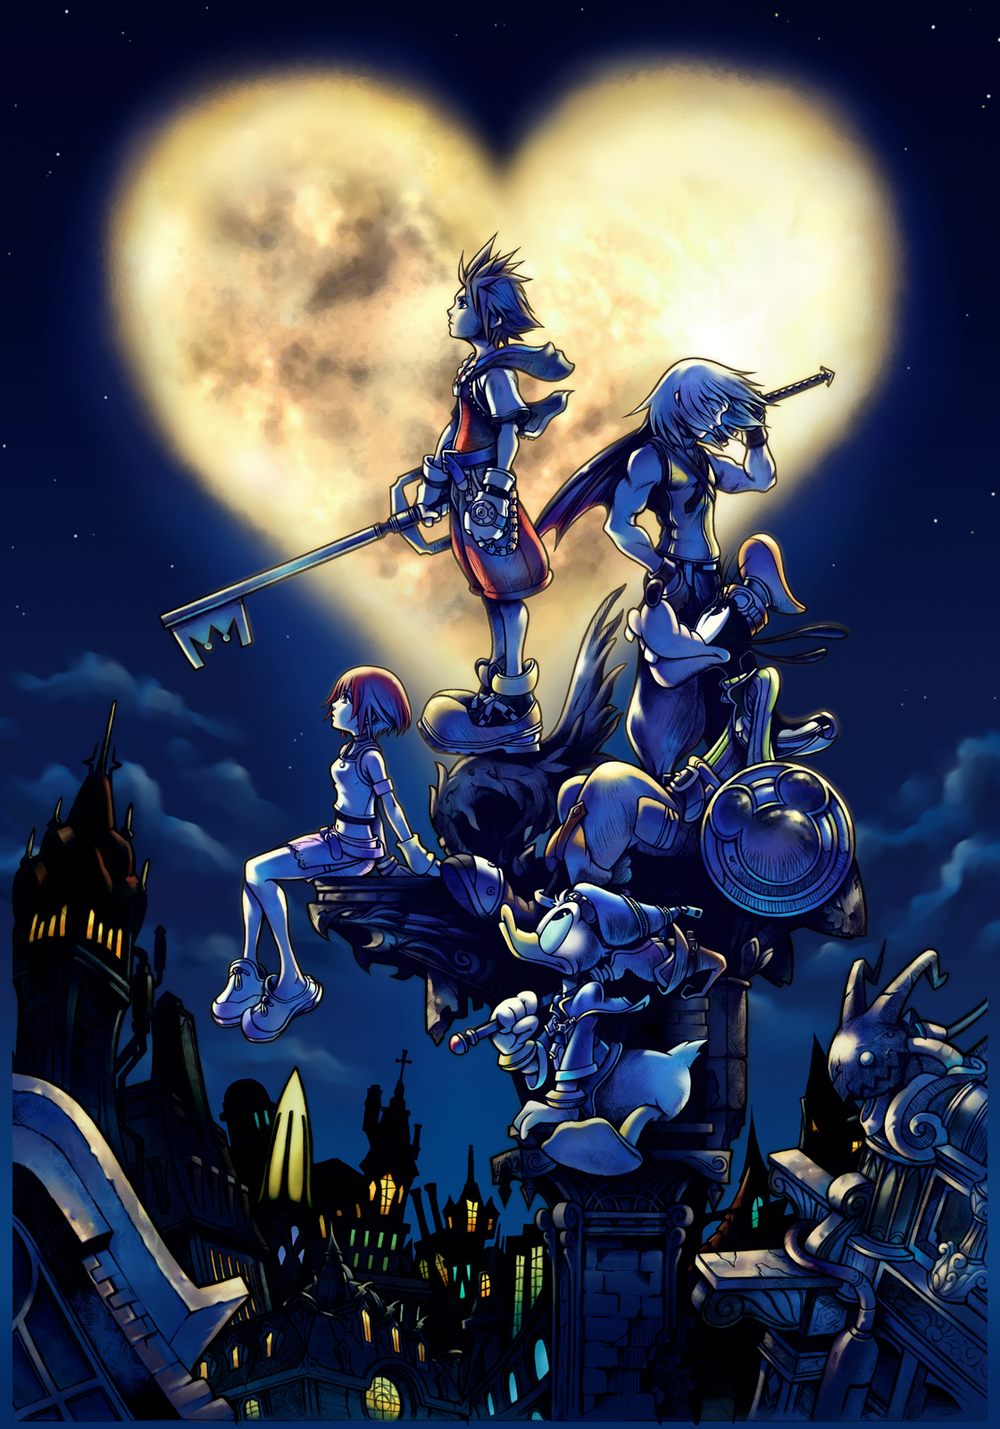 I will complain about how terrible Kingdom Hearts is to the end of time, and I'll STILL think this is a really cool poster. Damn you Nomura.